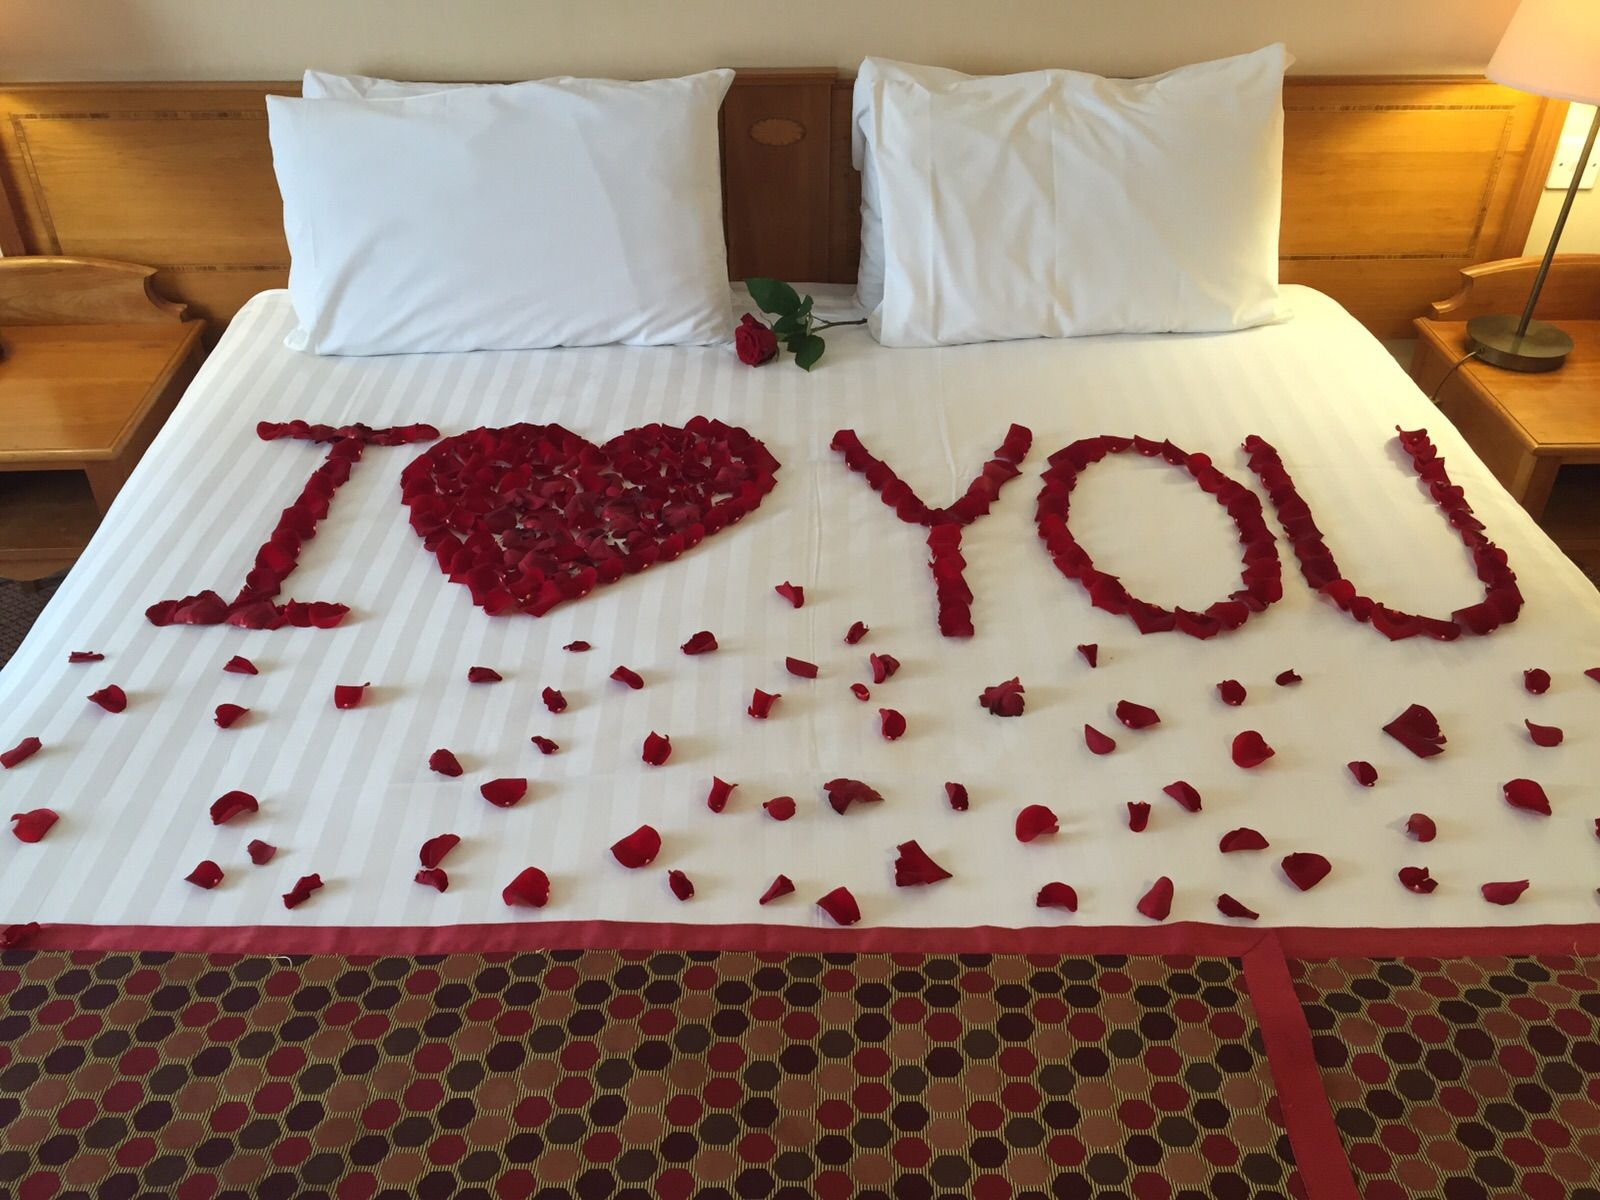 Pin By Candy On Romantic Night Home Diy Bed Pillows Rose Petals